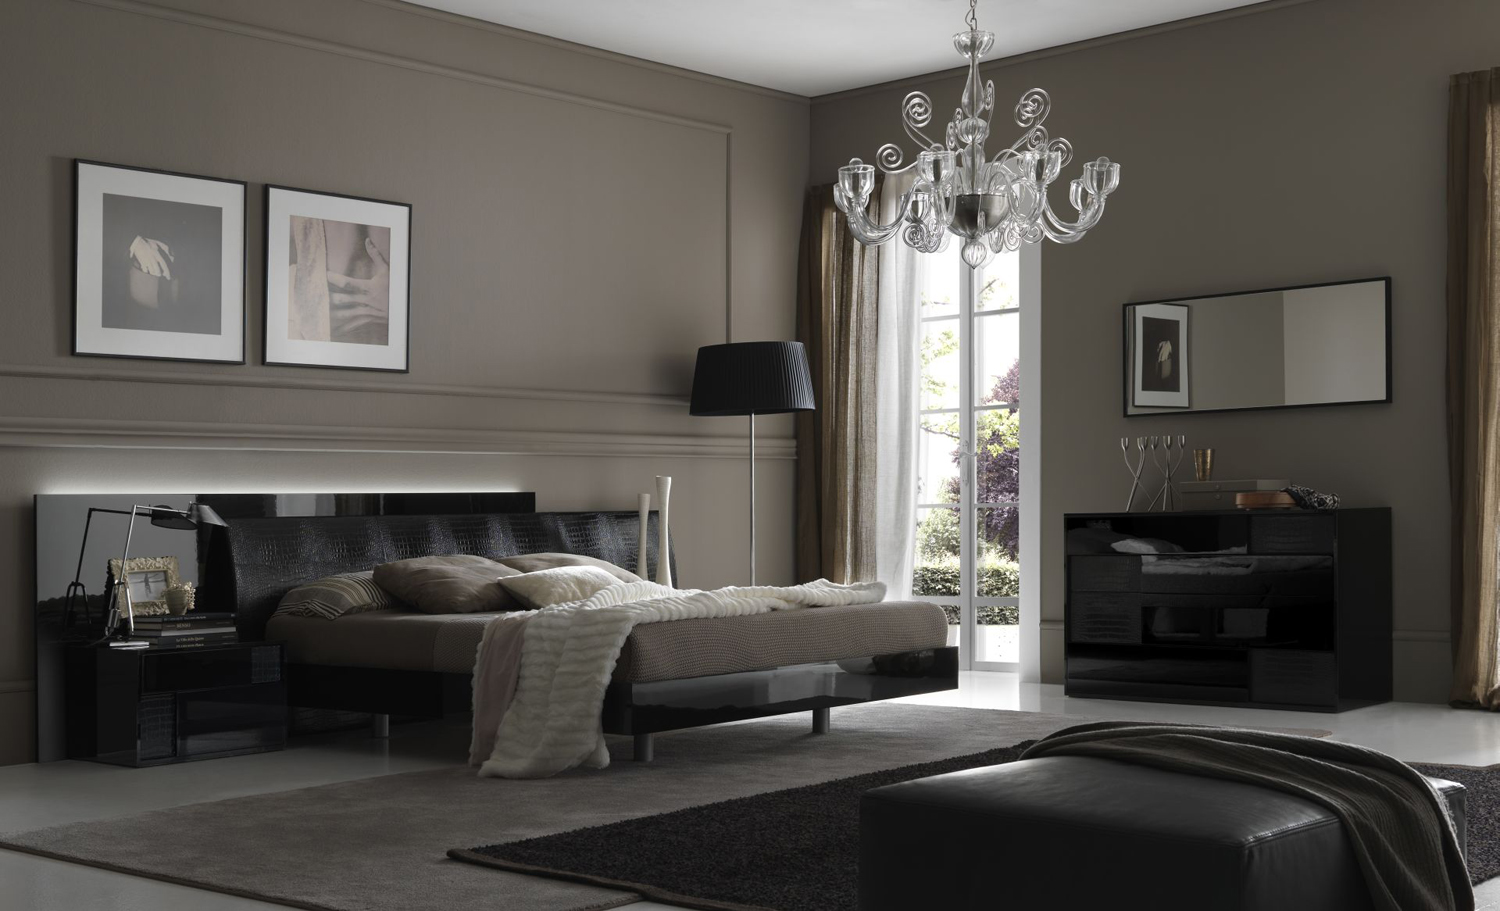 Bedroom decorating ideas from evinco for Bedroom design styles